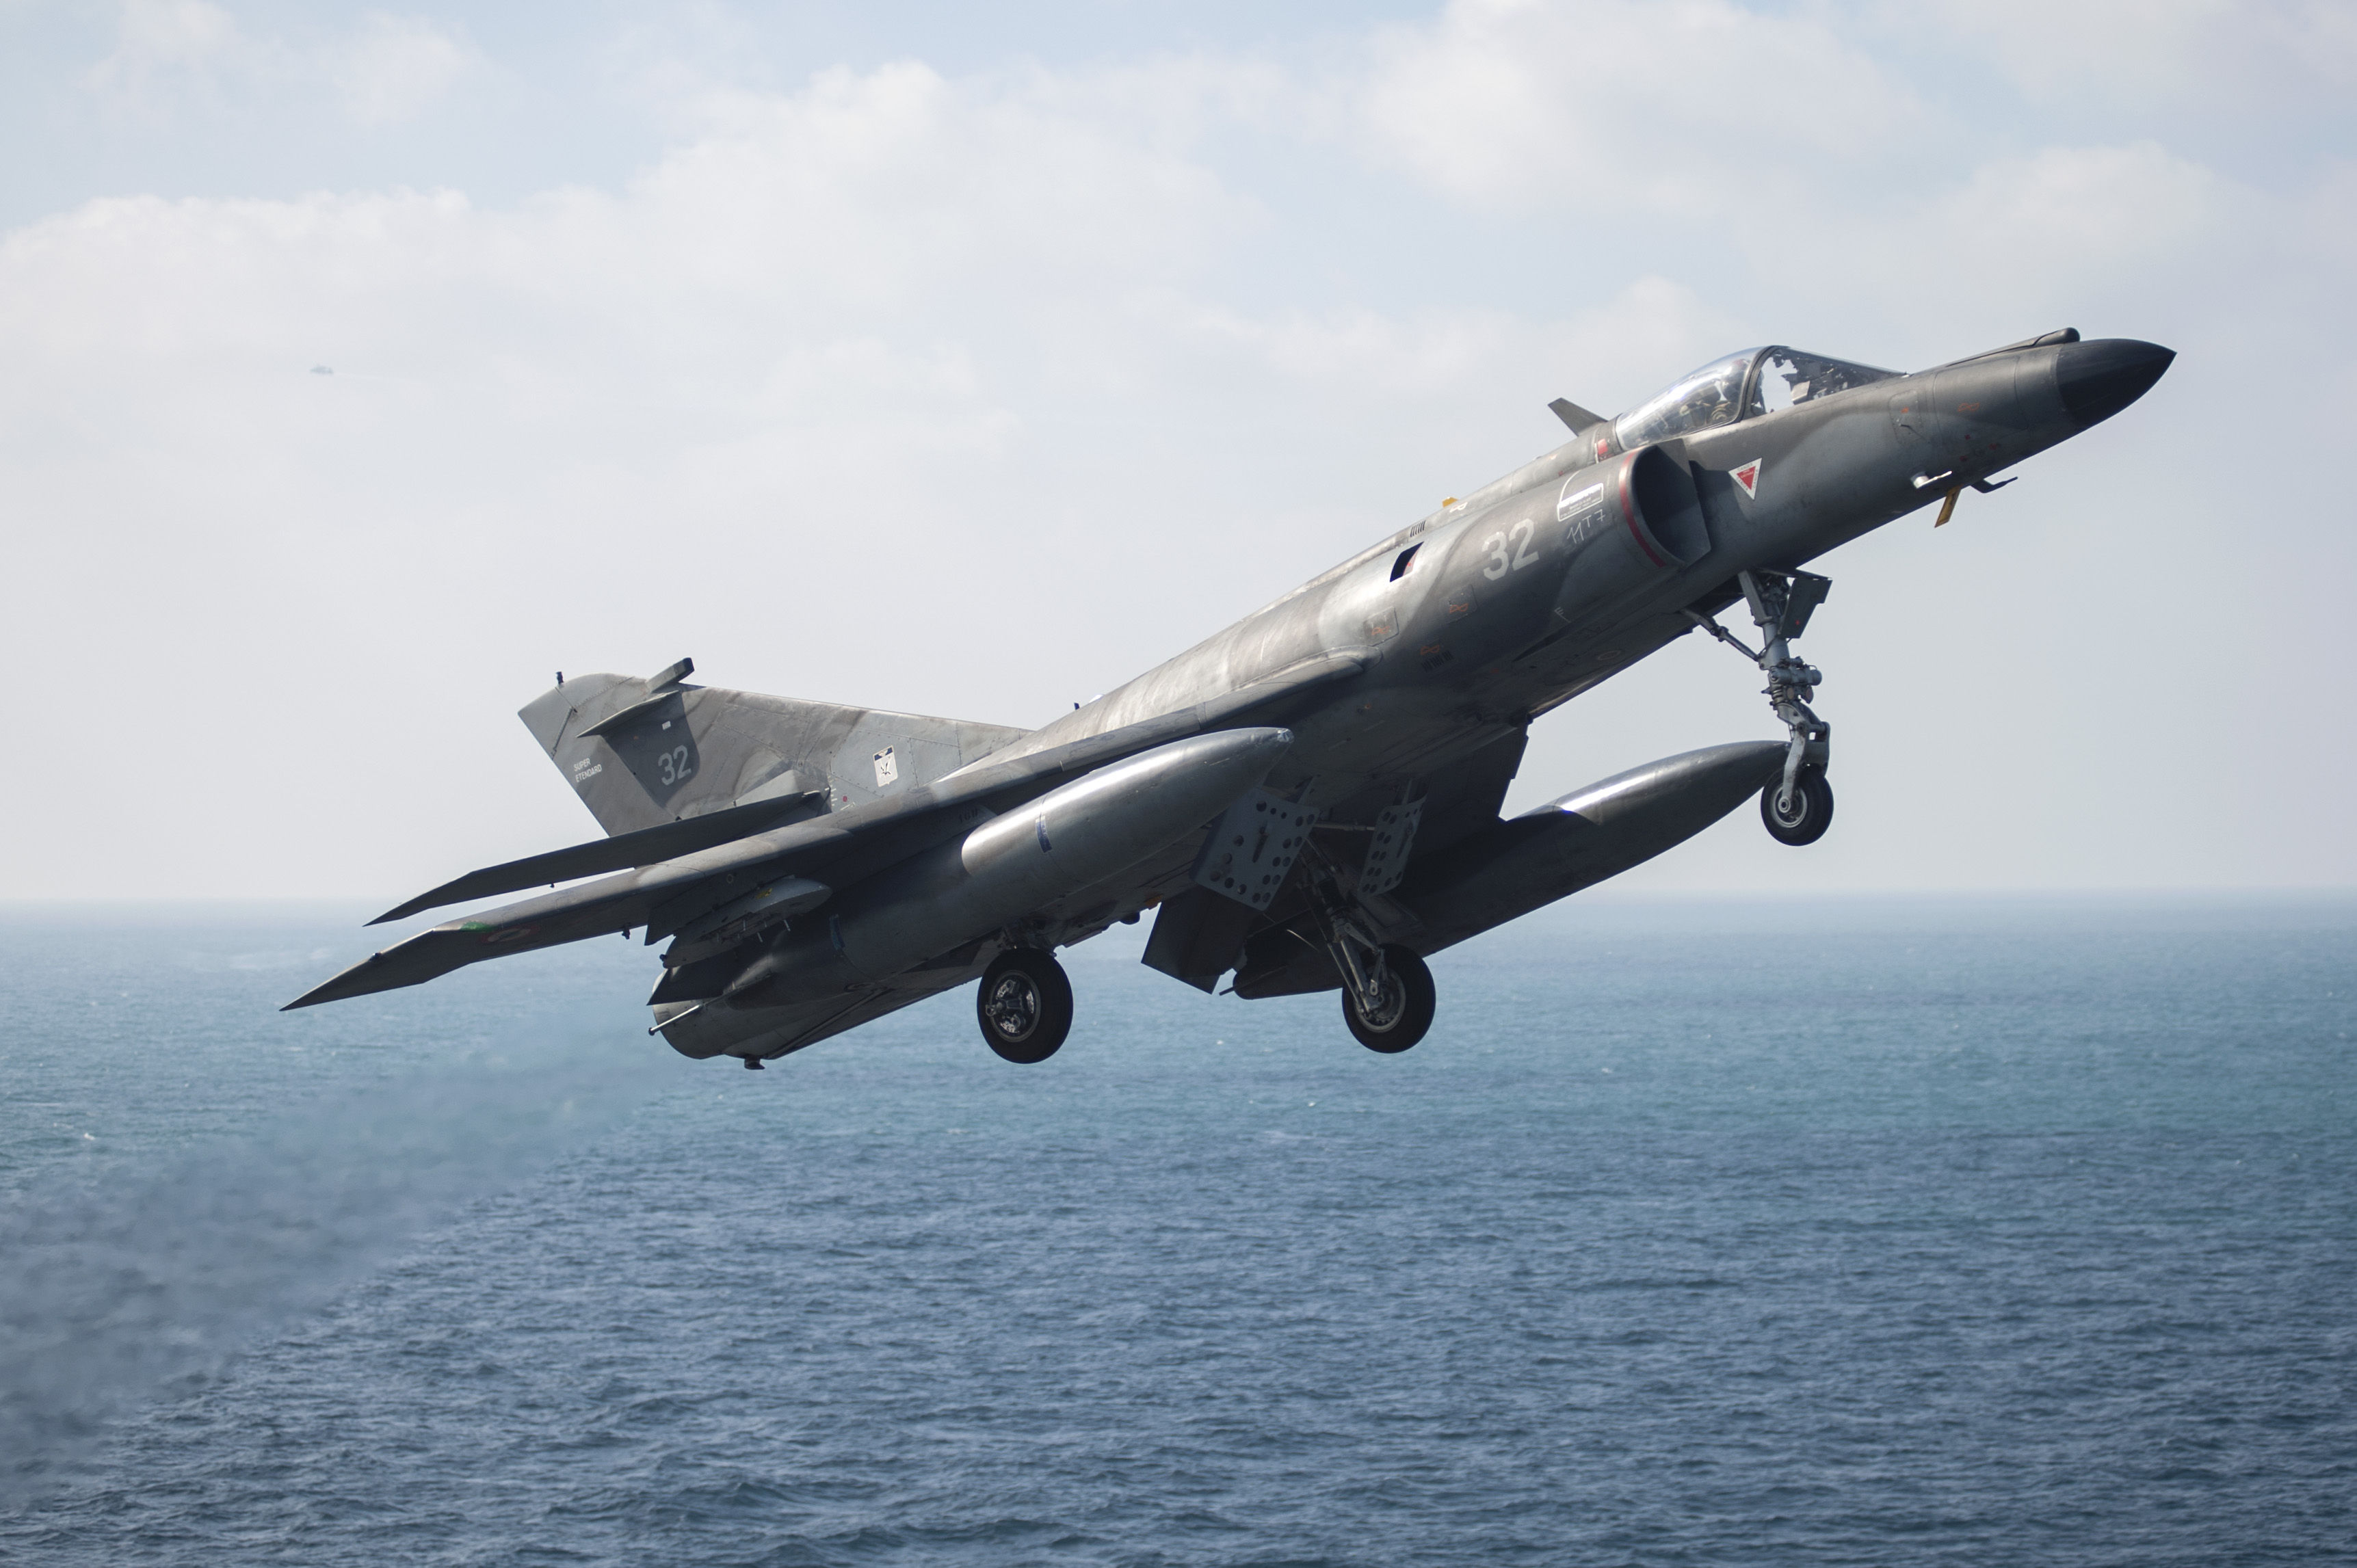 Un Super-Etendard survole l'USS Harry S. Truman